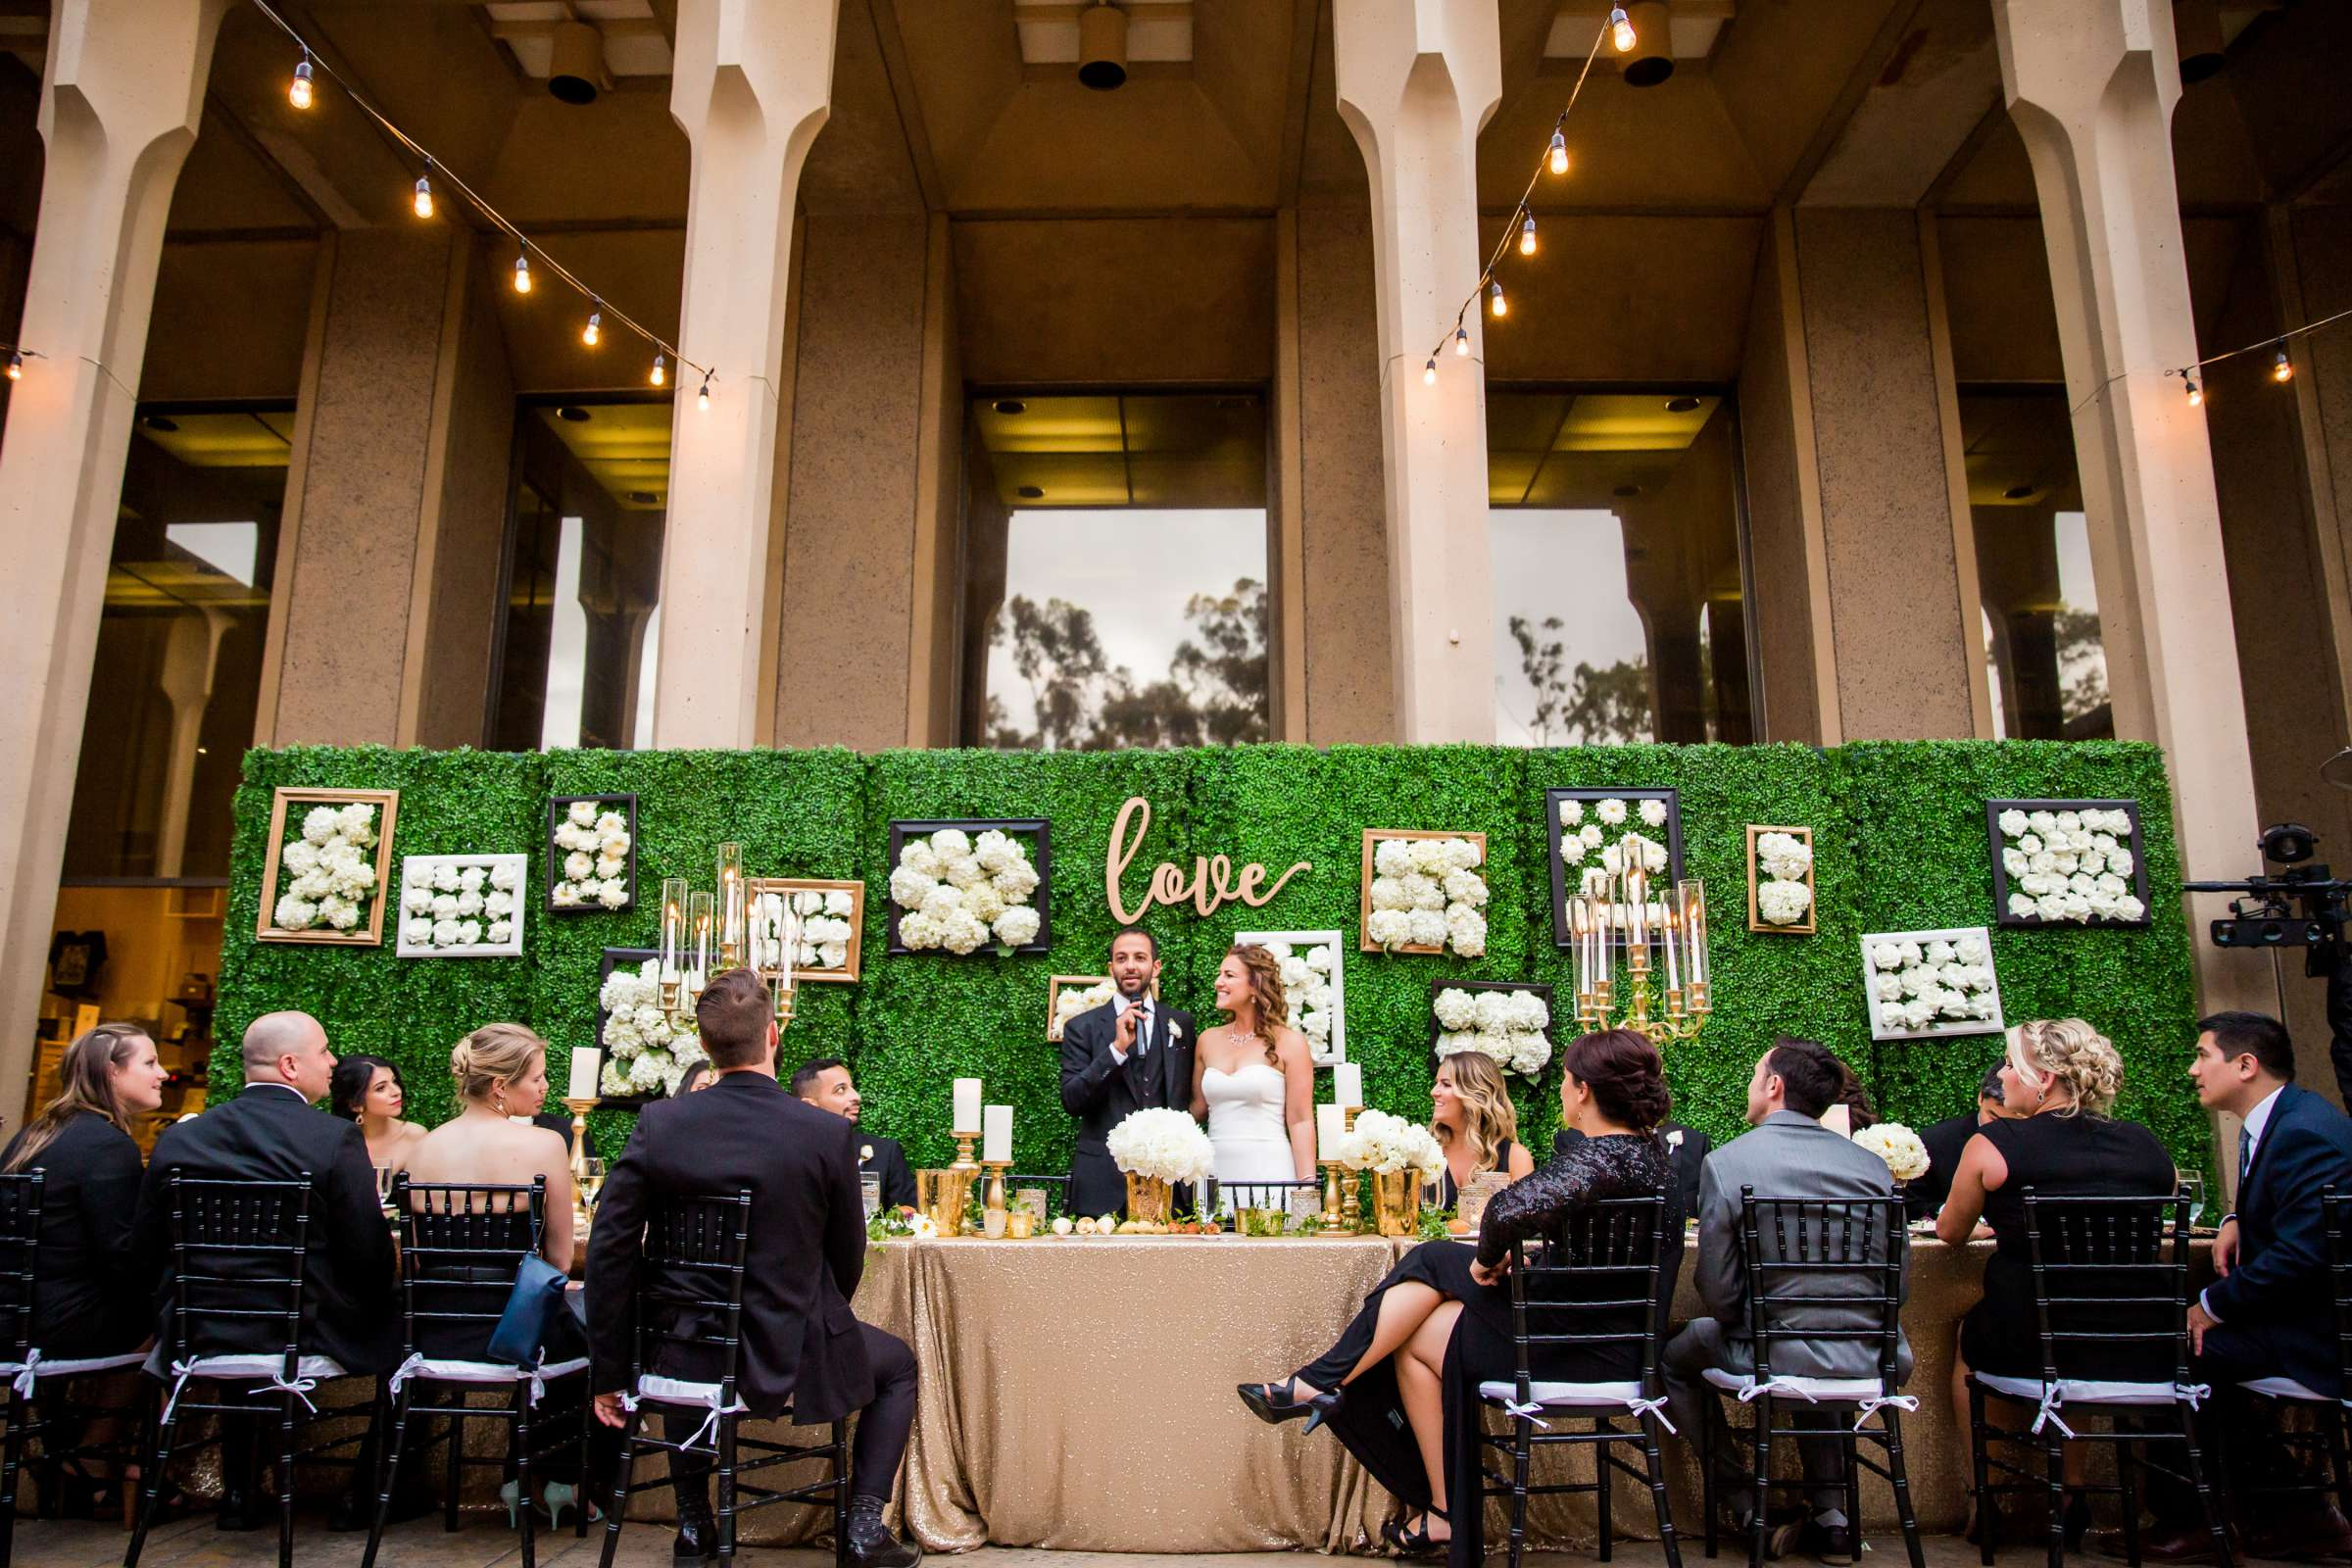 Reception at San Diego Museum of Art Wedding coordinated by First Comes Love Weddings & Events, Ruthie and Larry Wedding Photo #236847 by True Photography